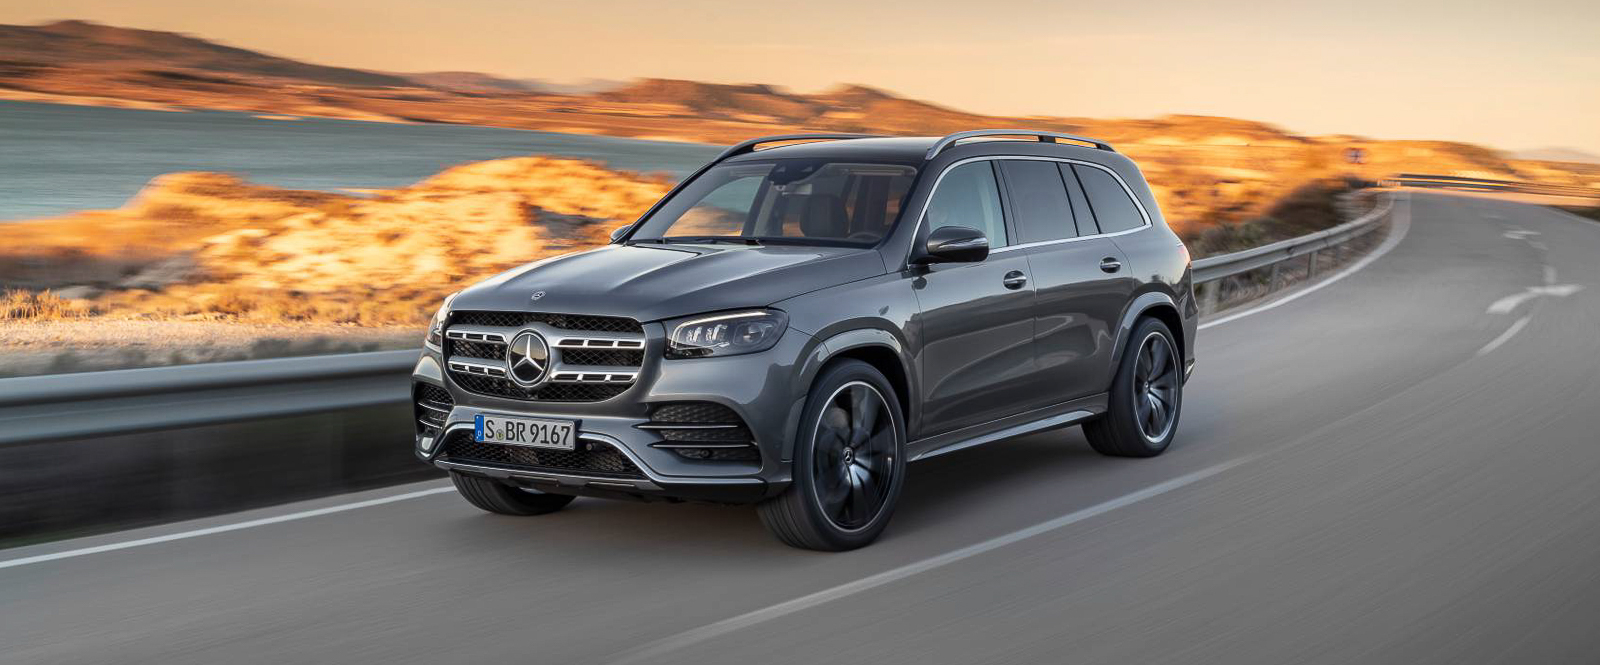 Mercedes-Benz GLS 2020 0